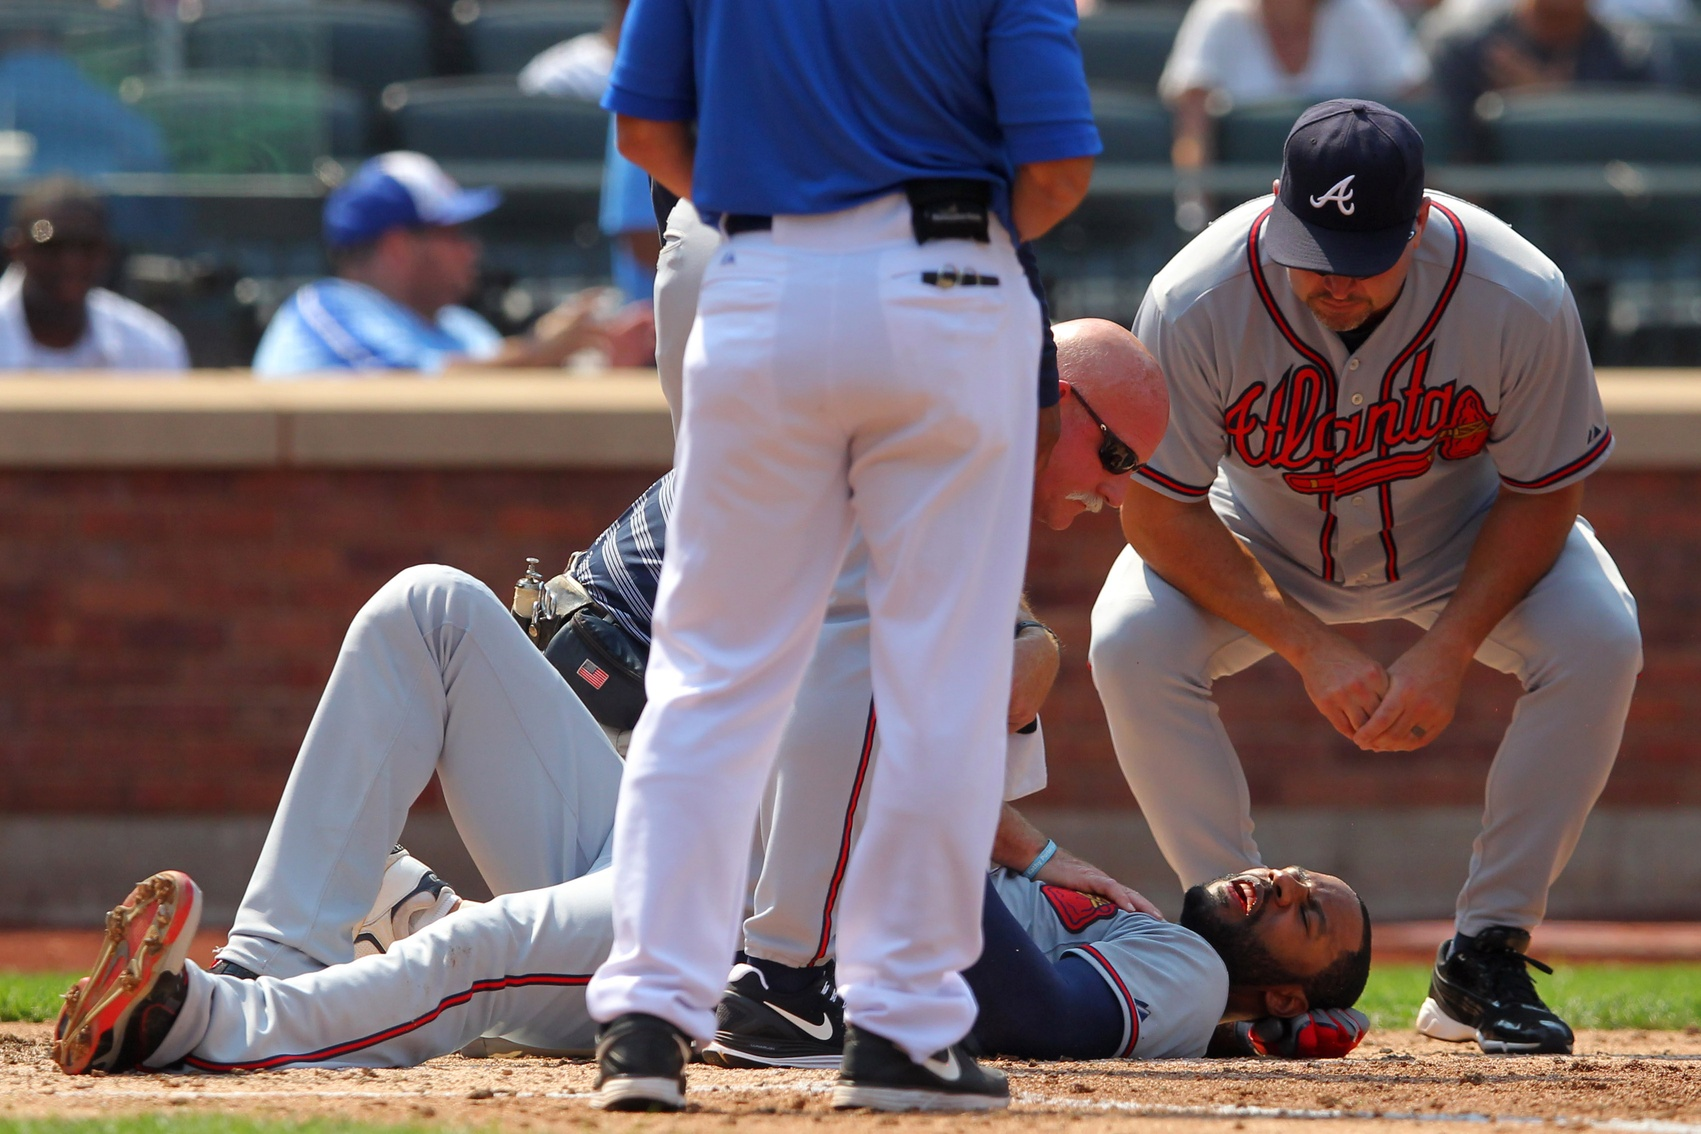 Satin Homers, Niese Shines, But Blown Call Hands Mets 4-1 Loss To Braves